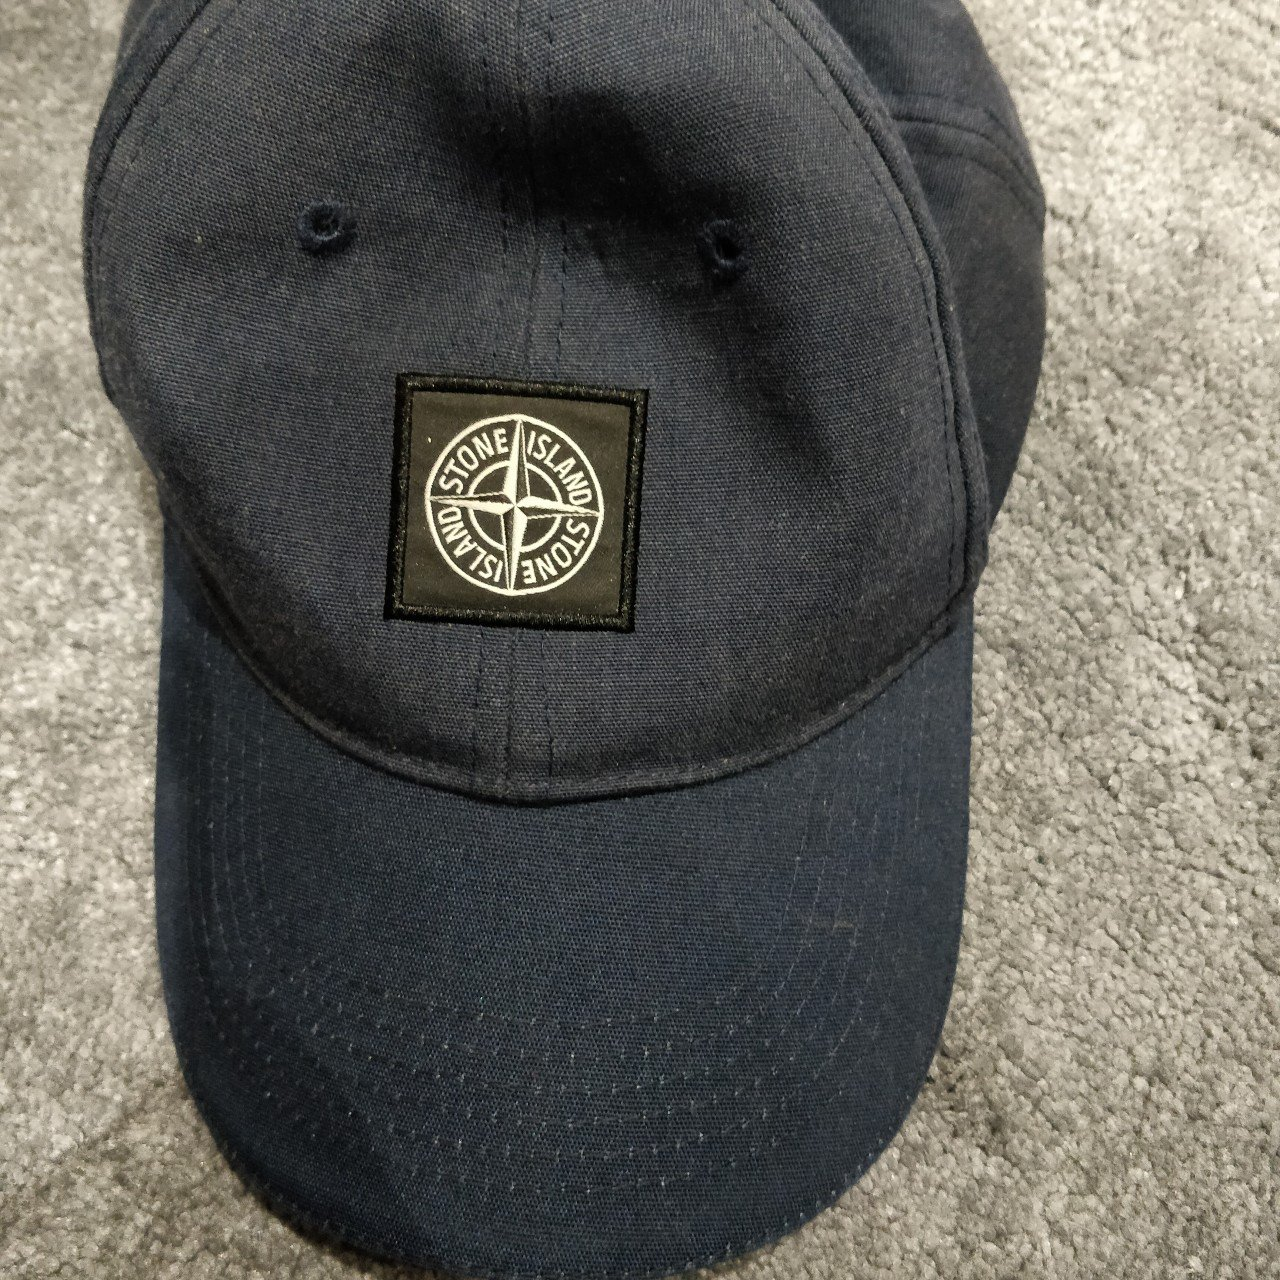 Stone Island navy blue cap. Size L. Years old but still new - Depop f5d244796390